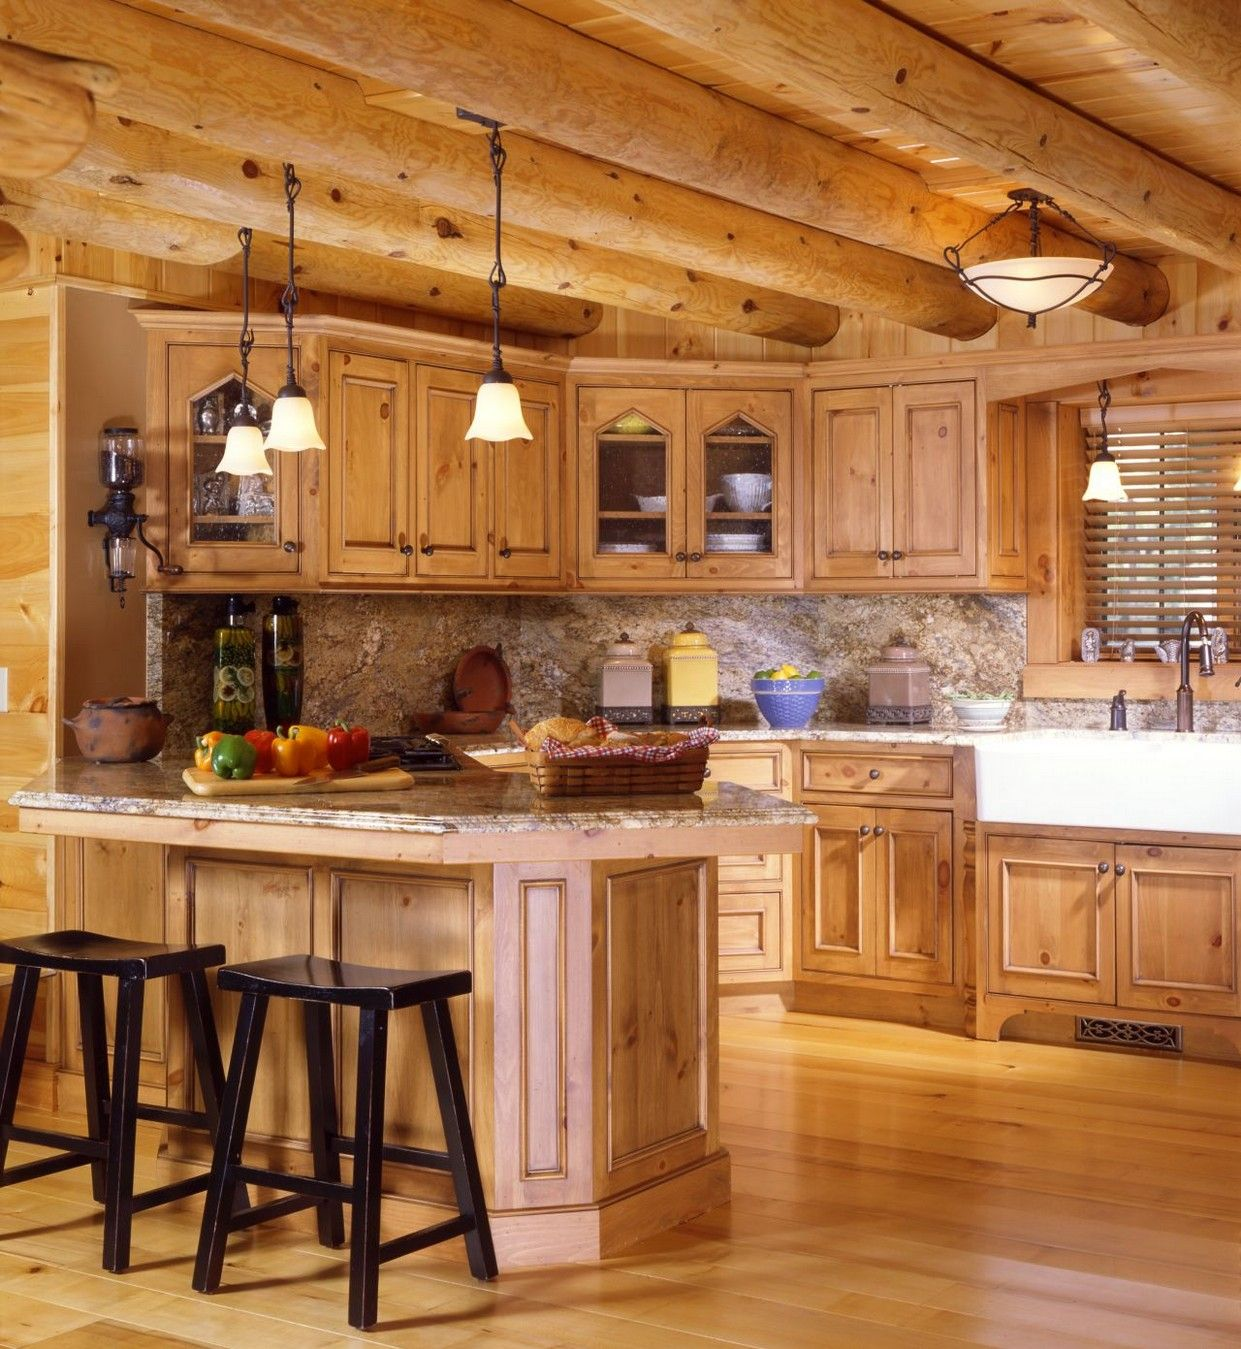 Best Kitchen Gallery: Huge Log Cabin Kitchens Kitchen Cabi S Home Design Yellowstone of Log Cabin Kitchen Cabinets on cal-ite.com